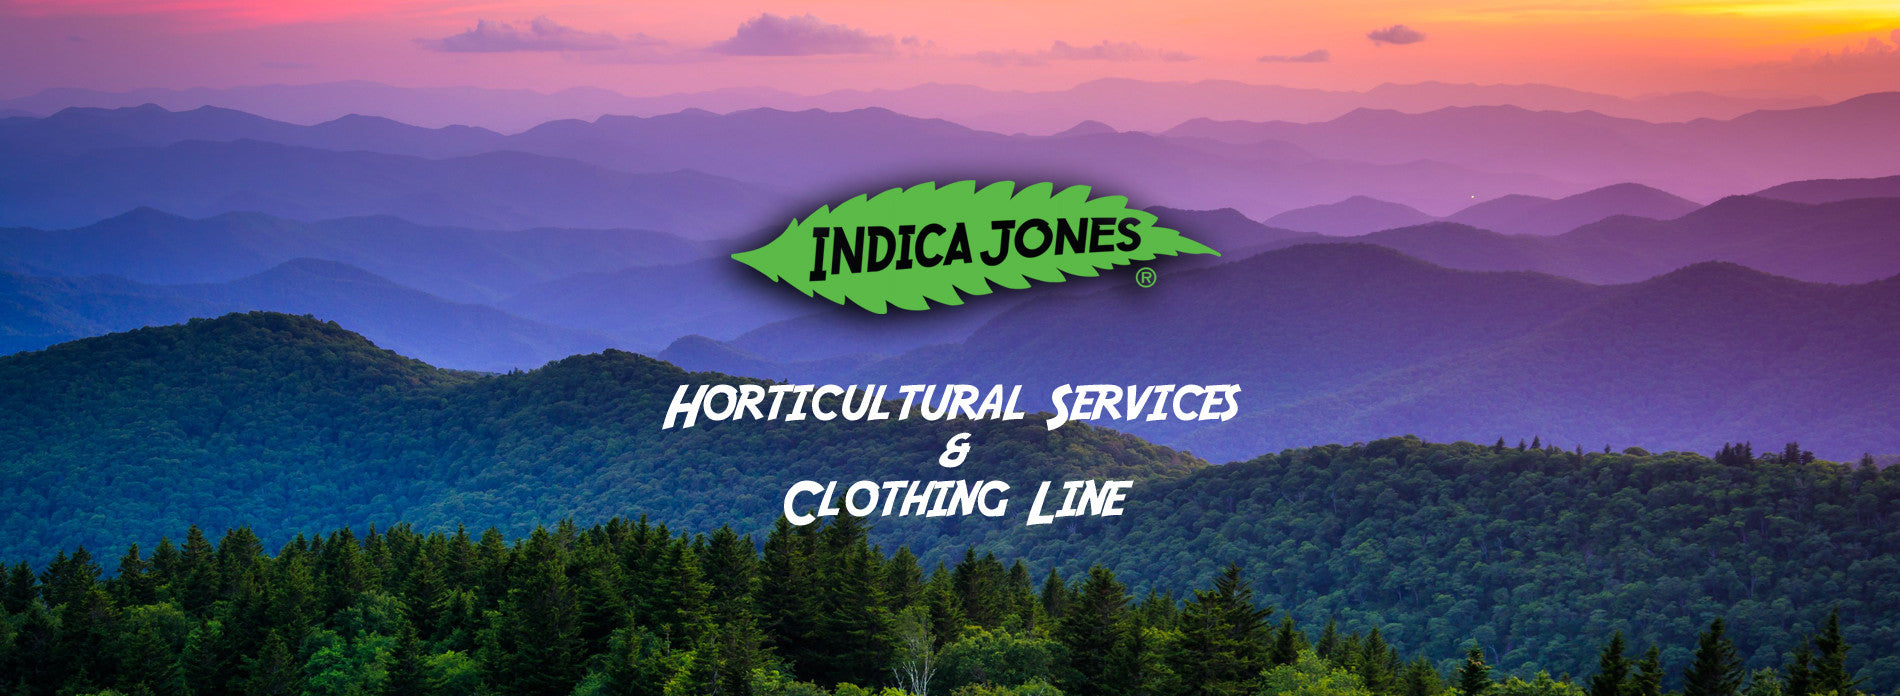 Indica Jones Horticultural Services and Clothing Line